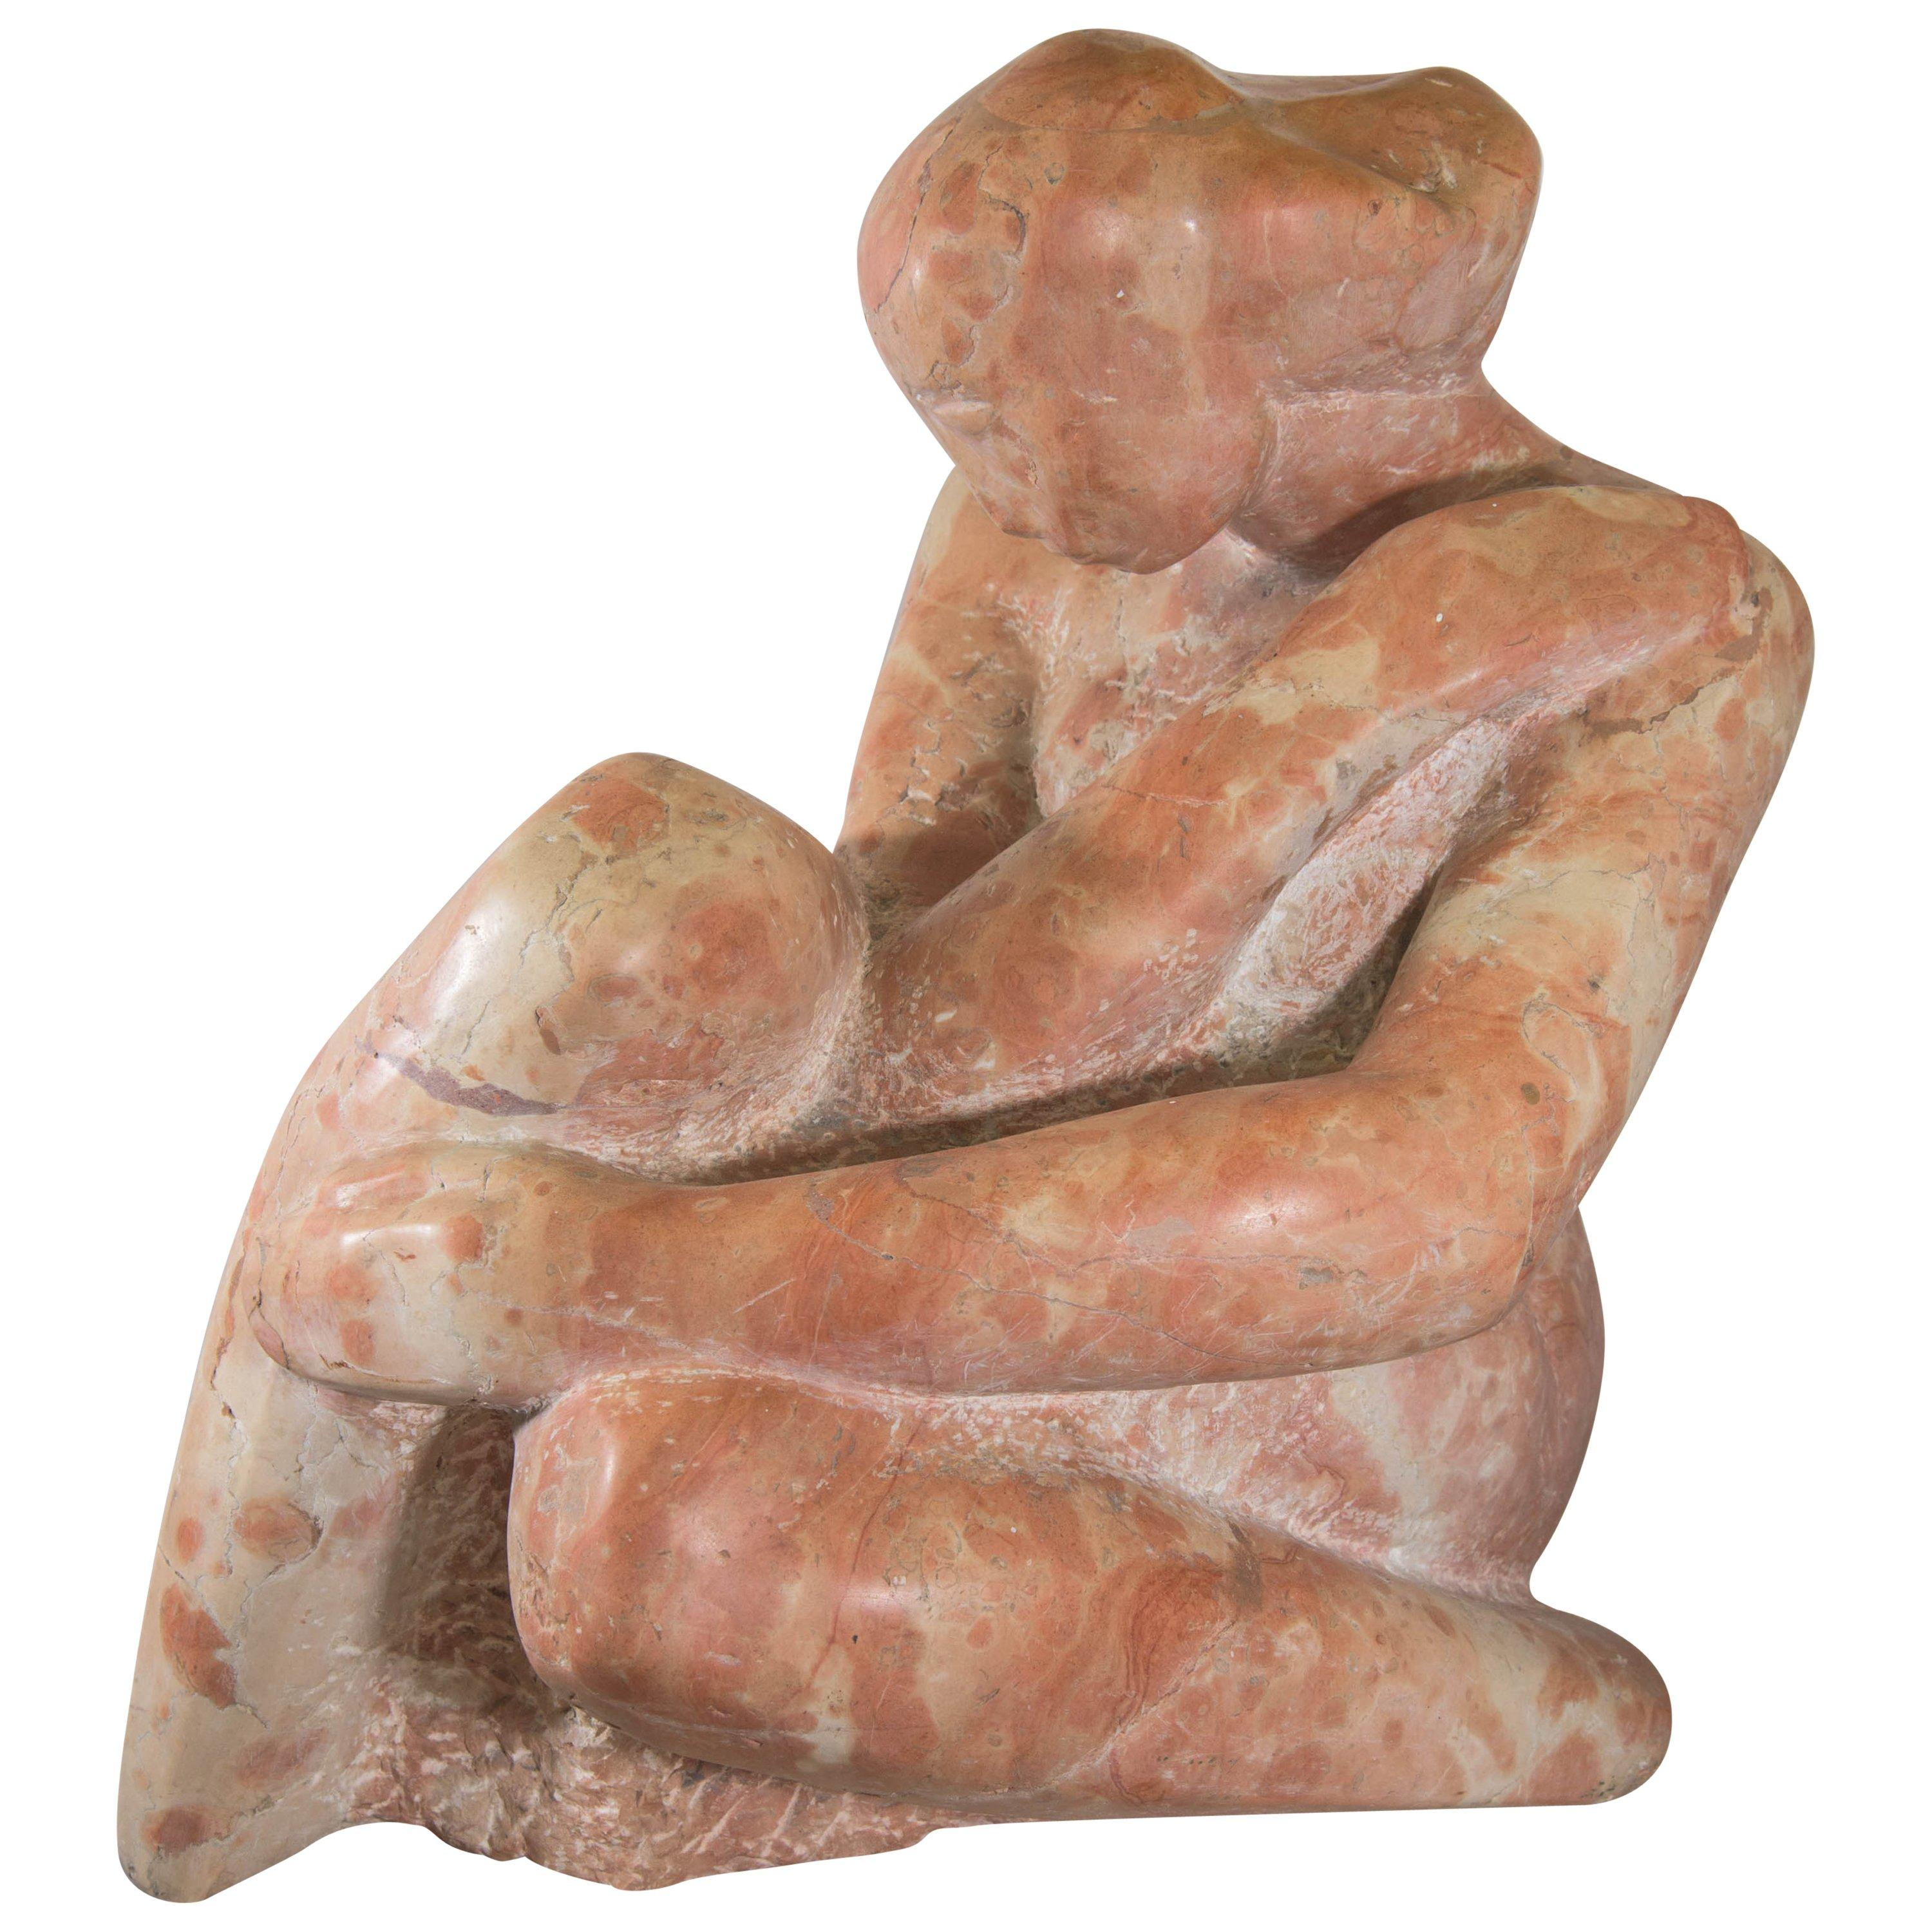 Midcentury Sculptural Nude in Rouge Marble in the Style of Claire McArdle